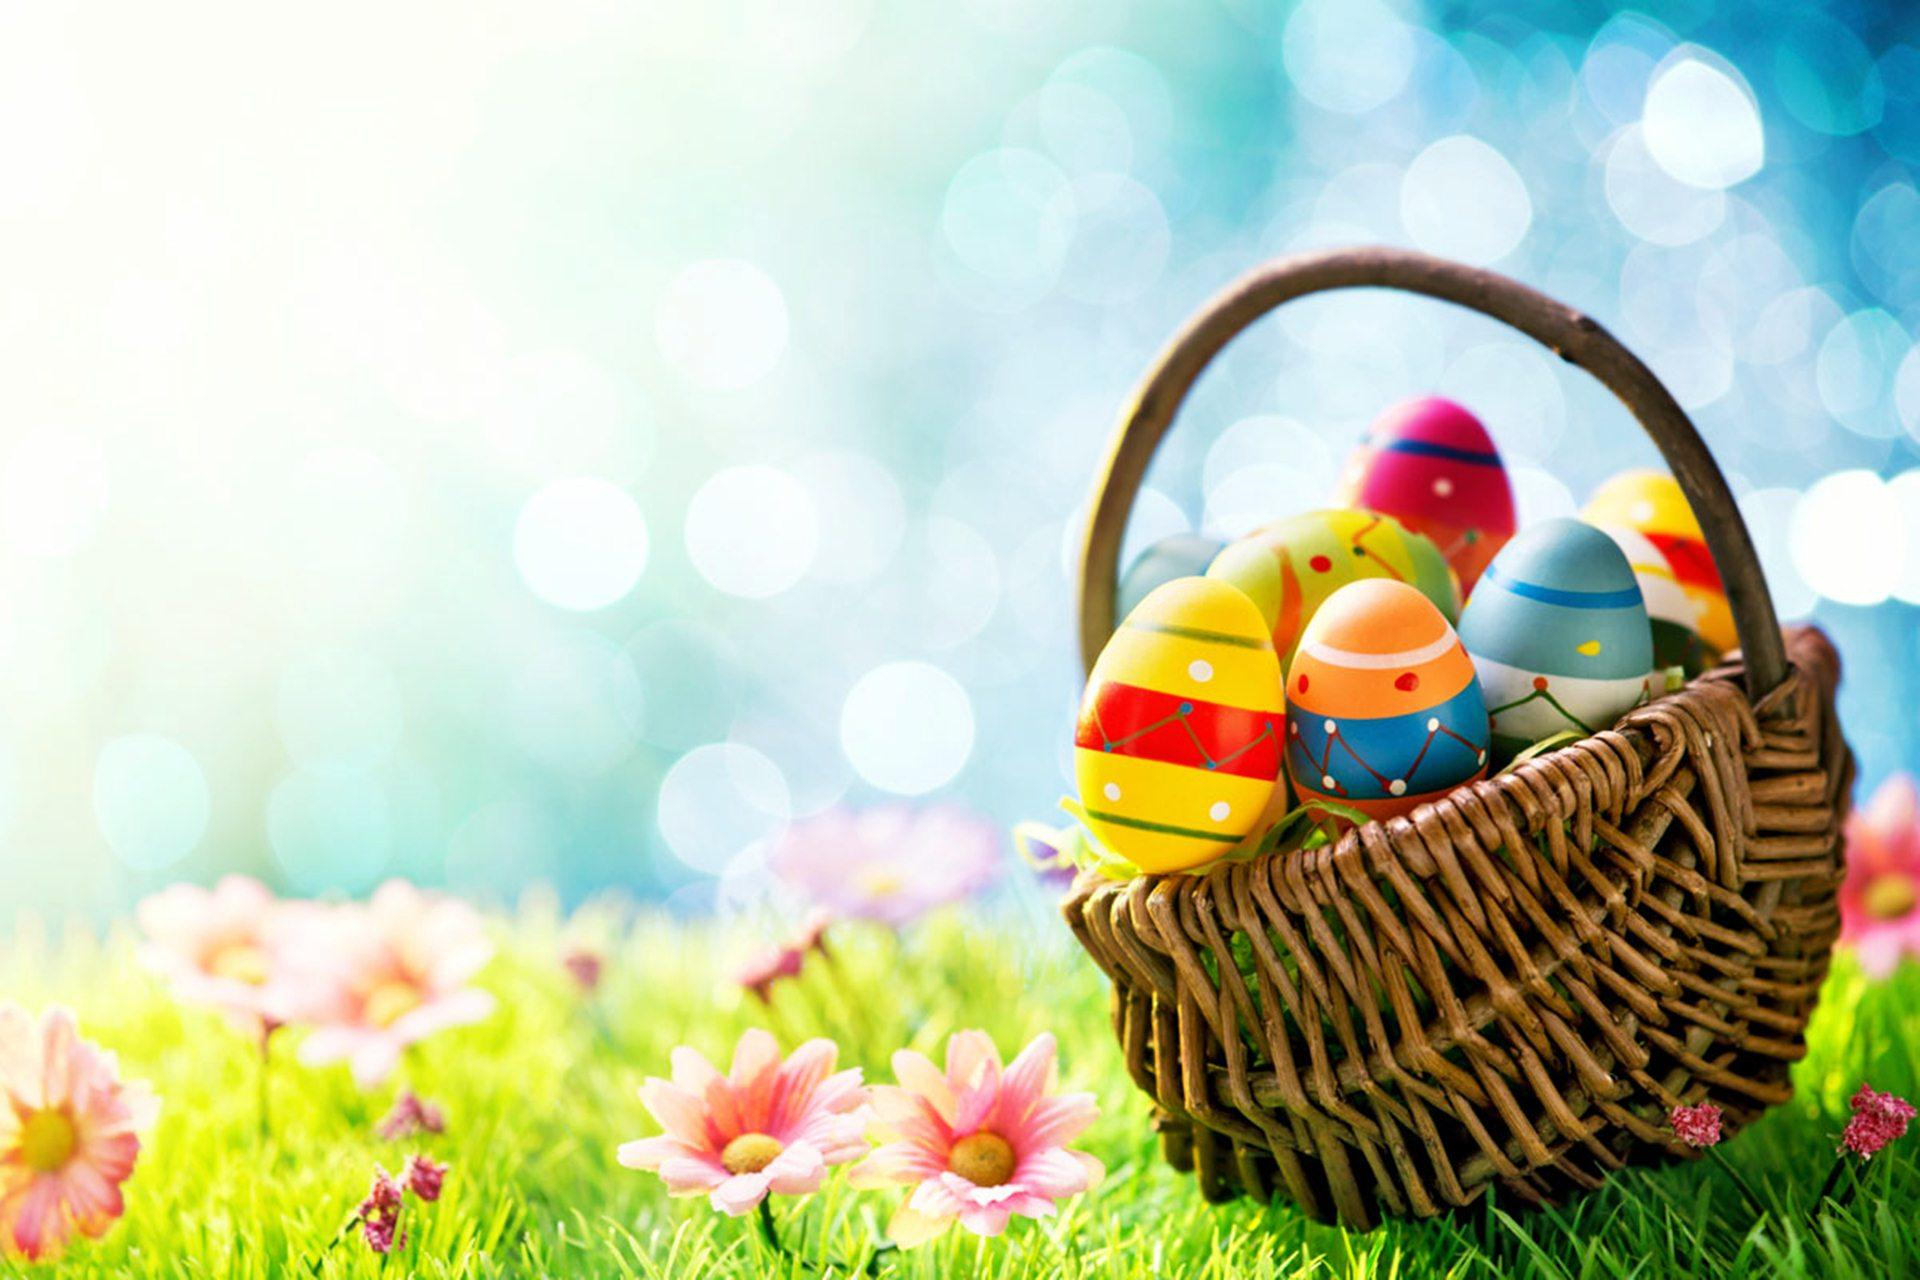 Easter 2018 Wallpapers Desktop Backgrounds | PixelsTalk.Net